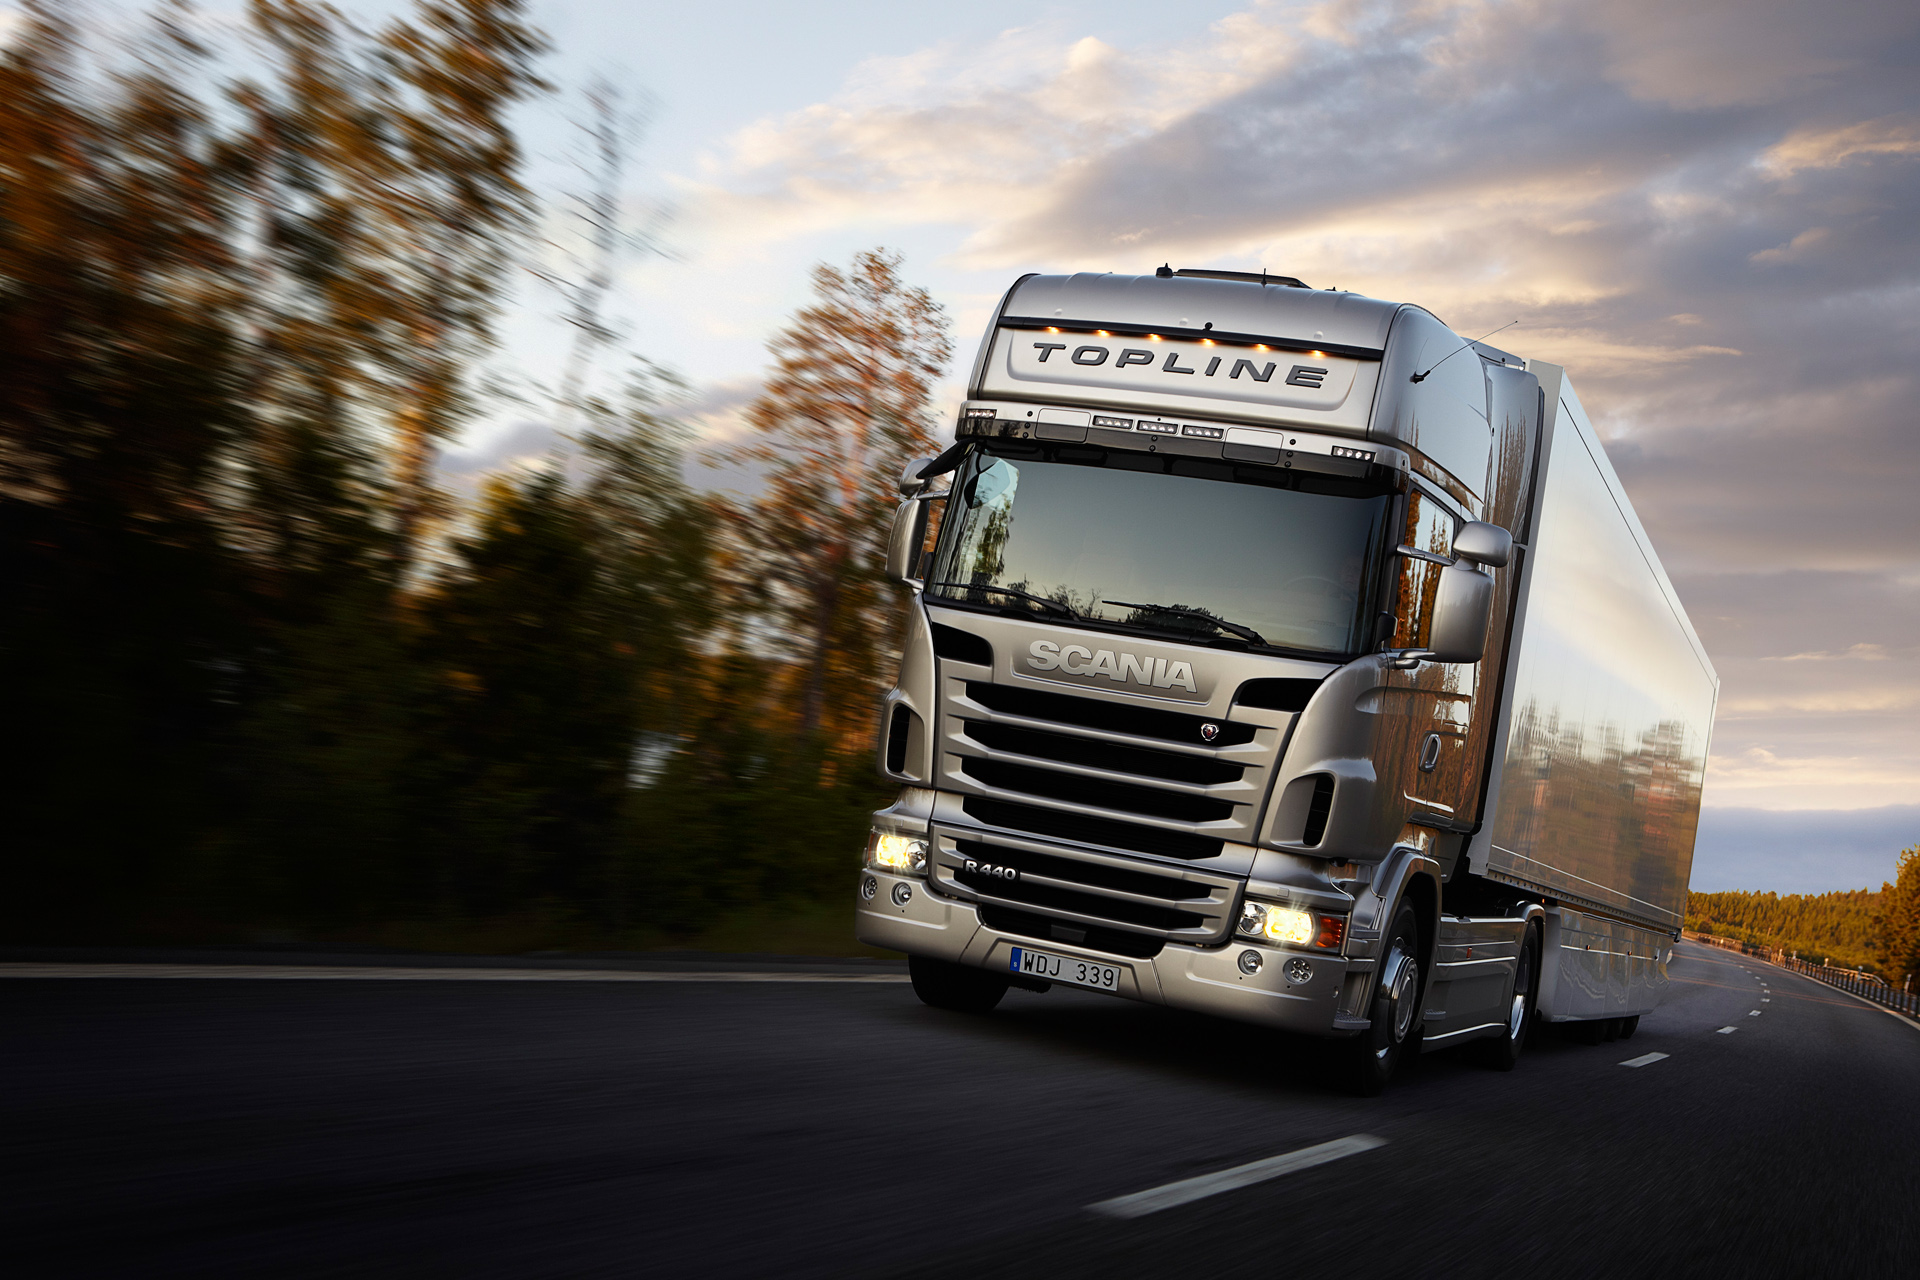 scania Scania has been manufacturing trucks and buses for almost a century the firm bases most of its manufacturing operations in sweden, but is active across the world and is owned by volkswagen.